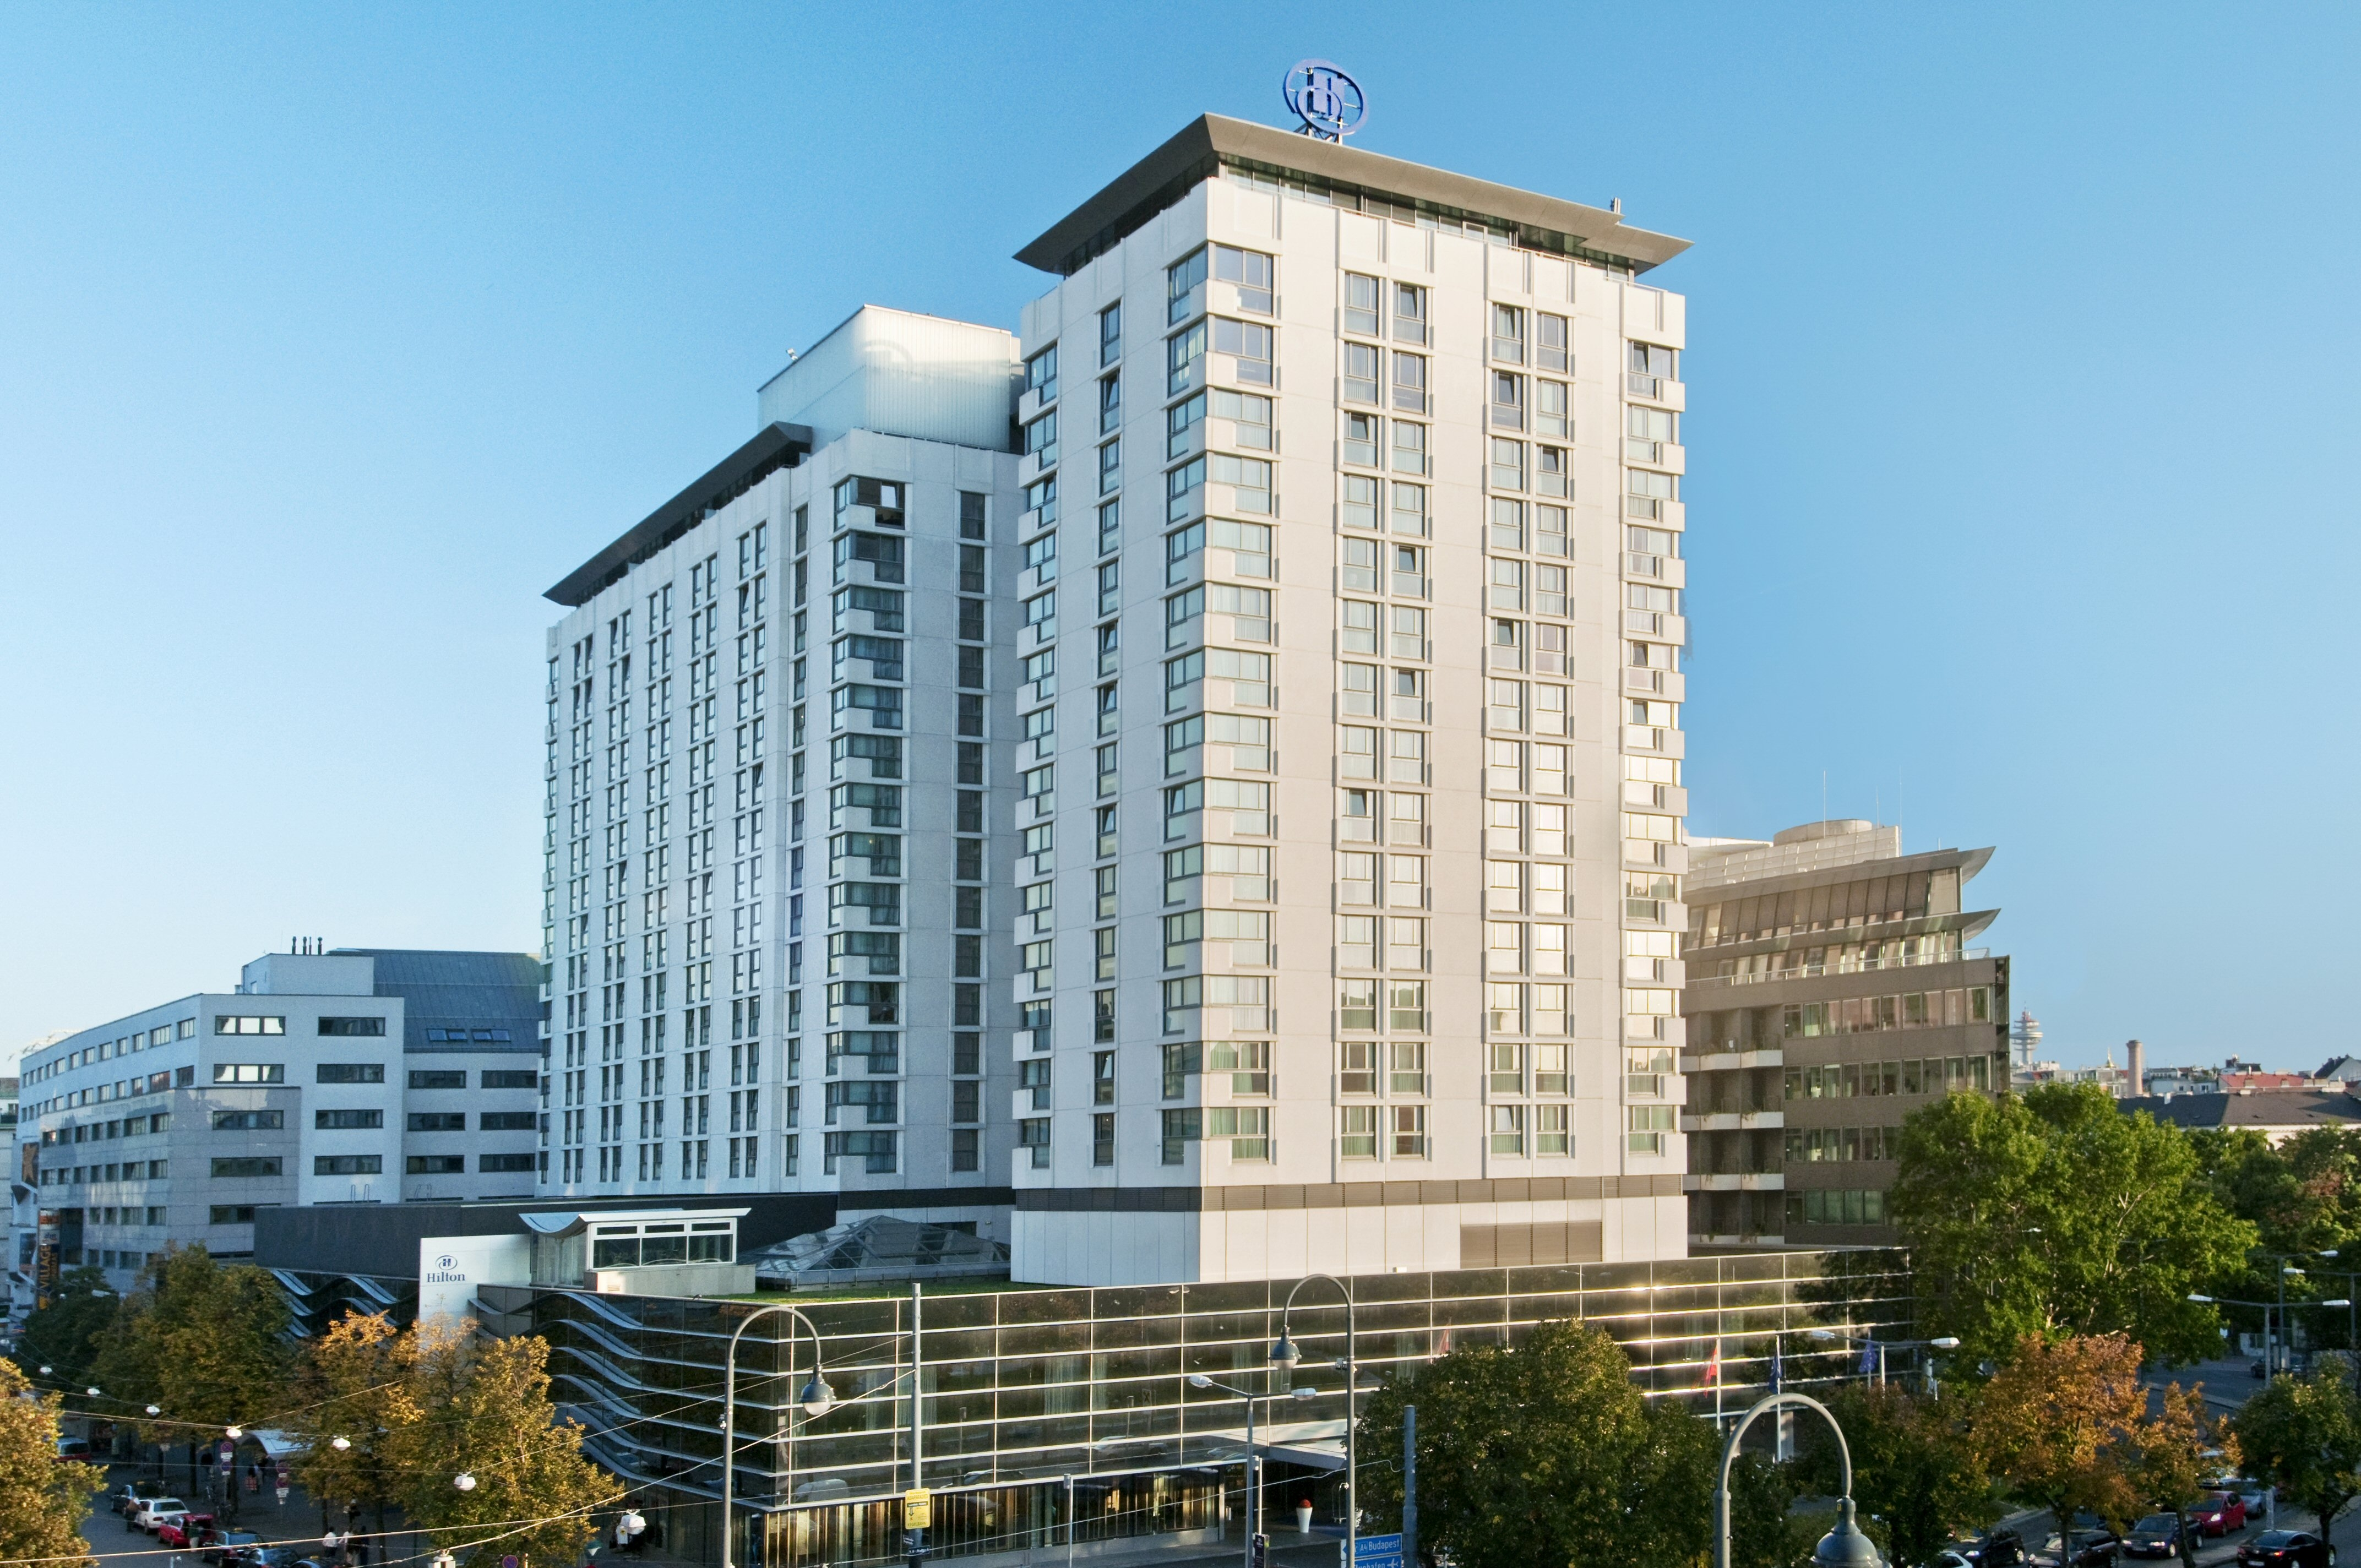 Meeting and event spaces at hilton austria hotels vienna and - New Members